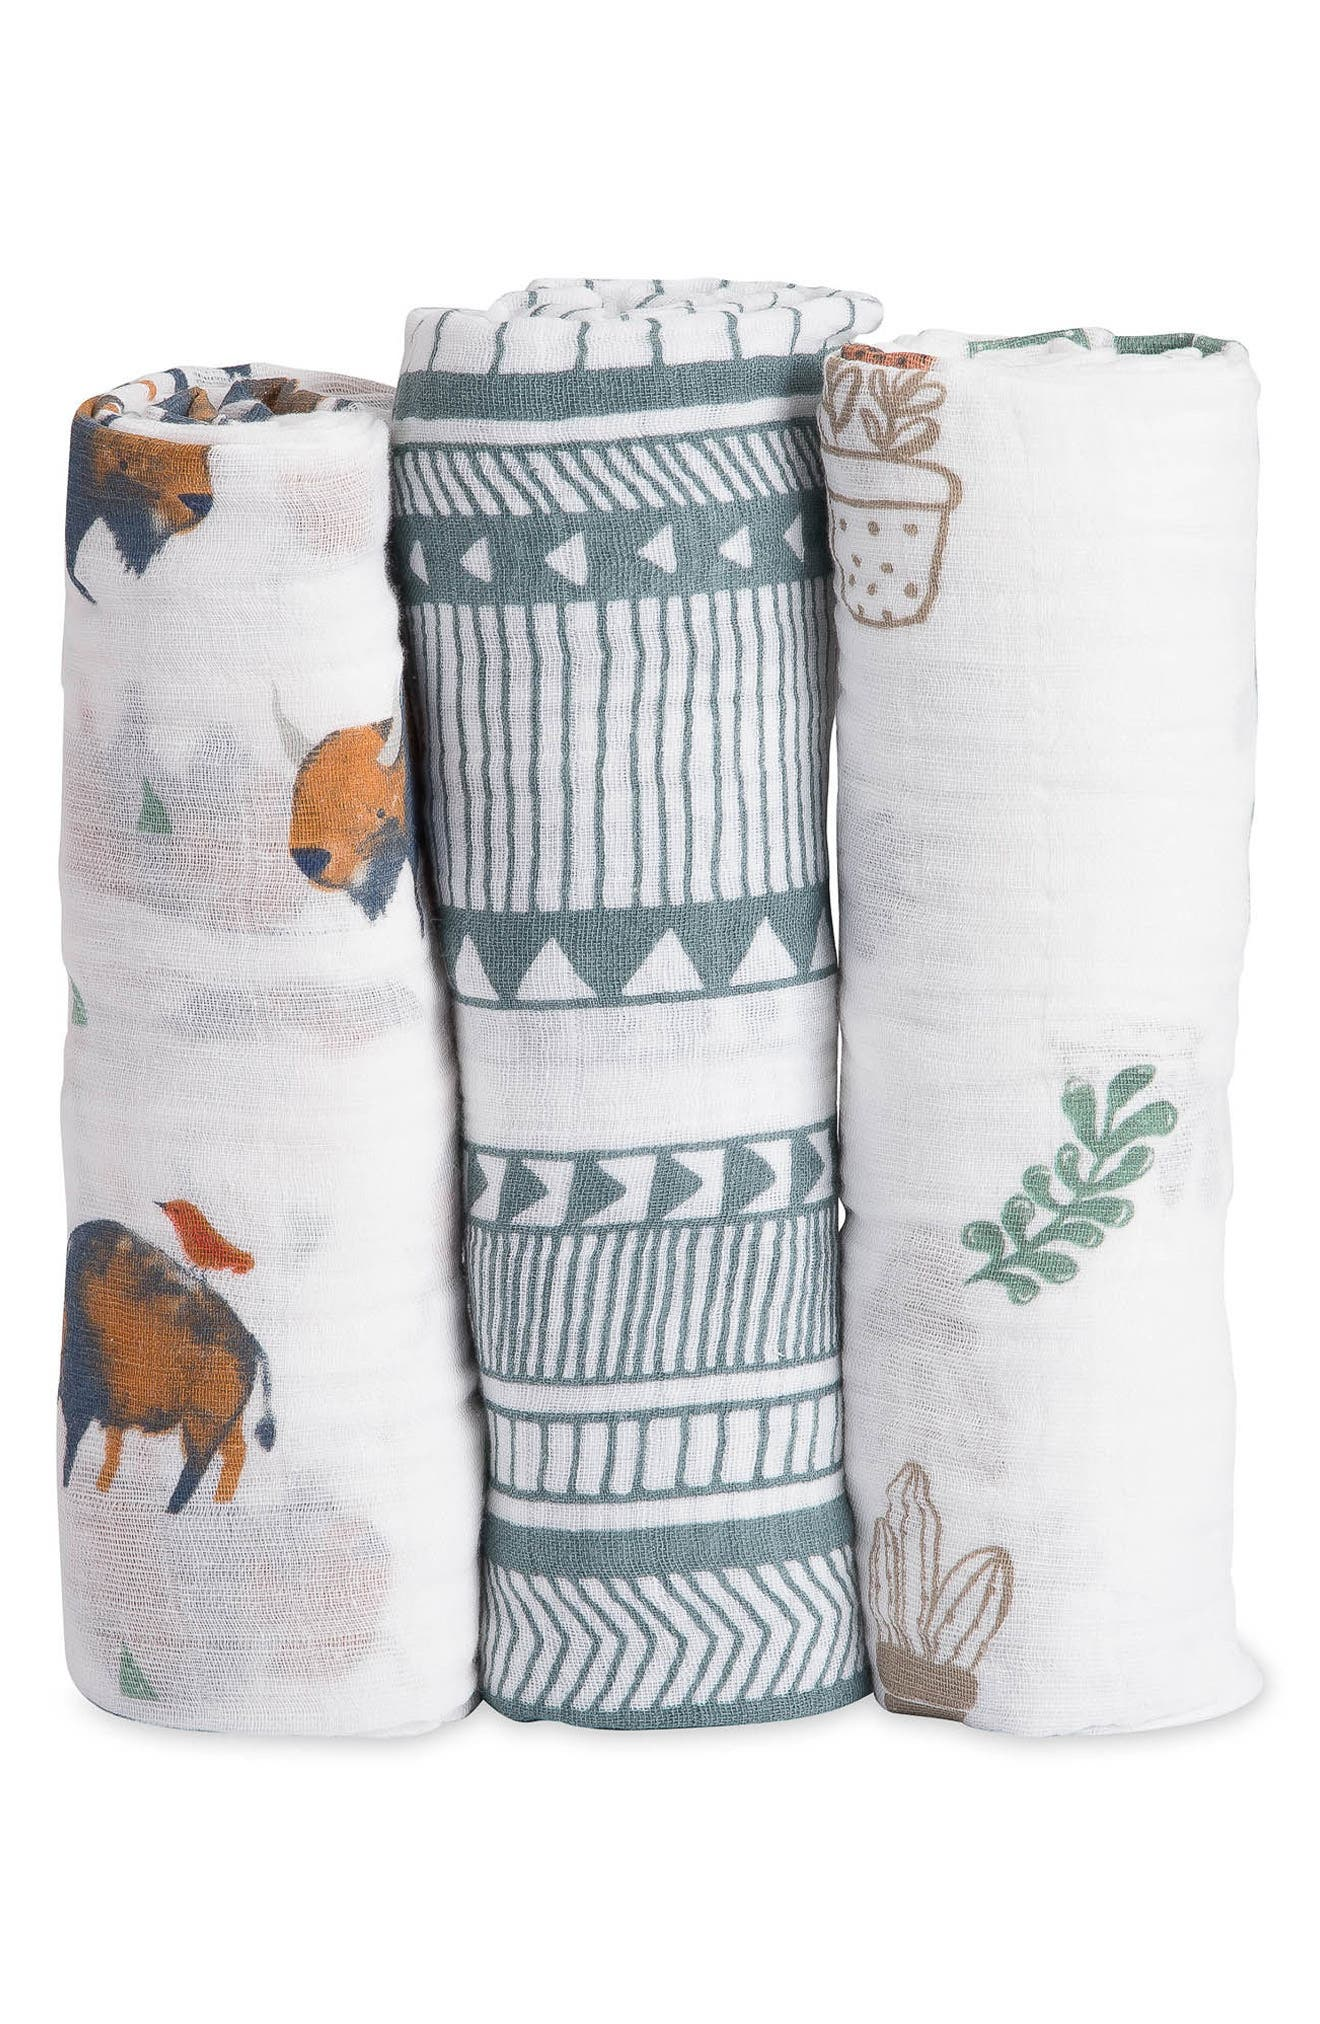 3-Pack Cotton Muslin Blankets,                         Main,                         color, BISON